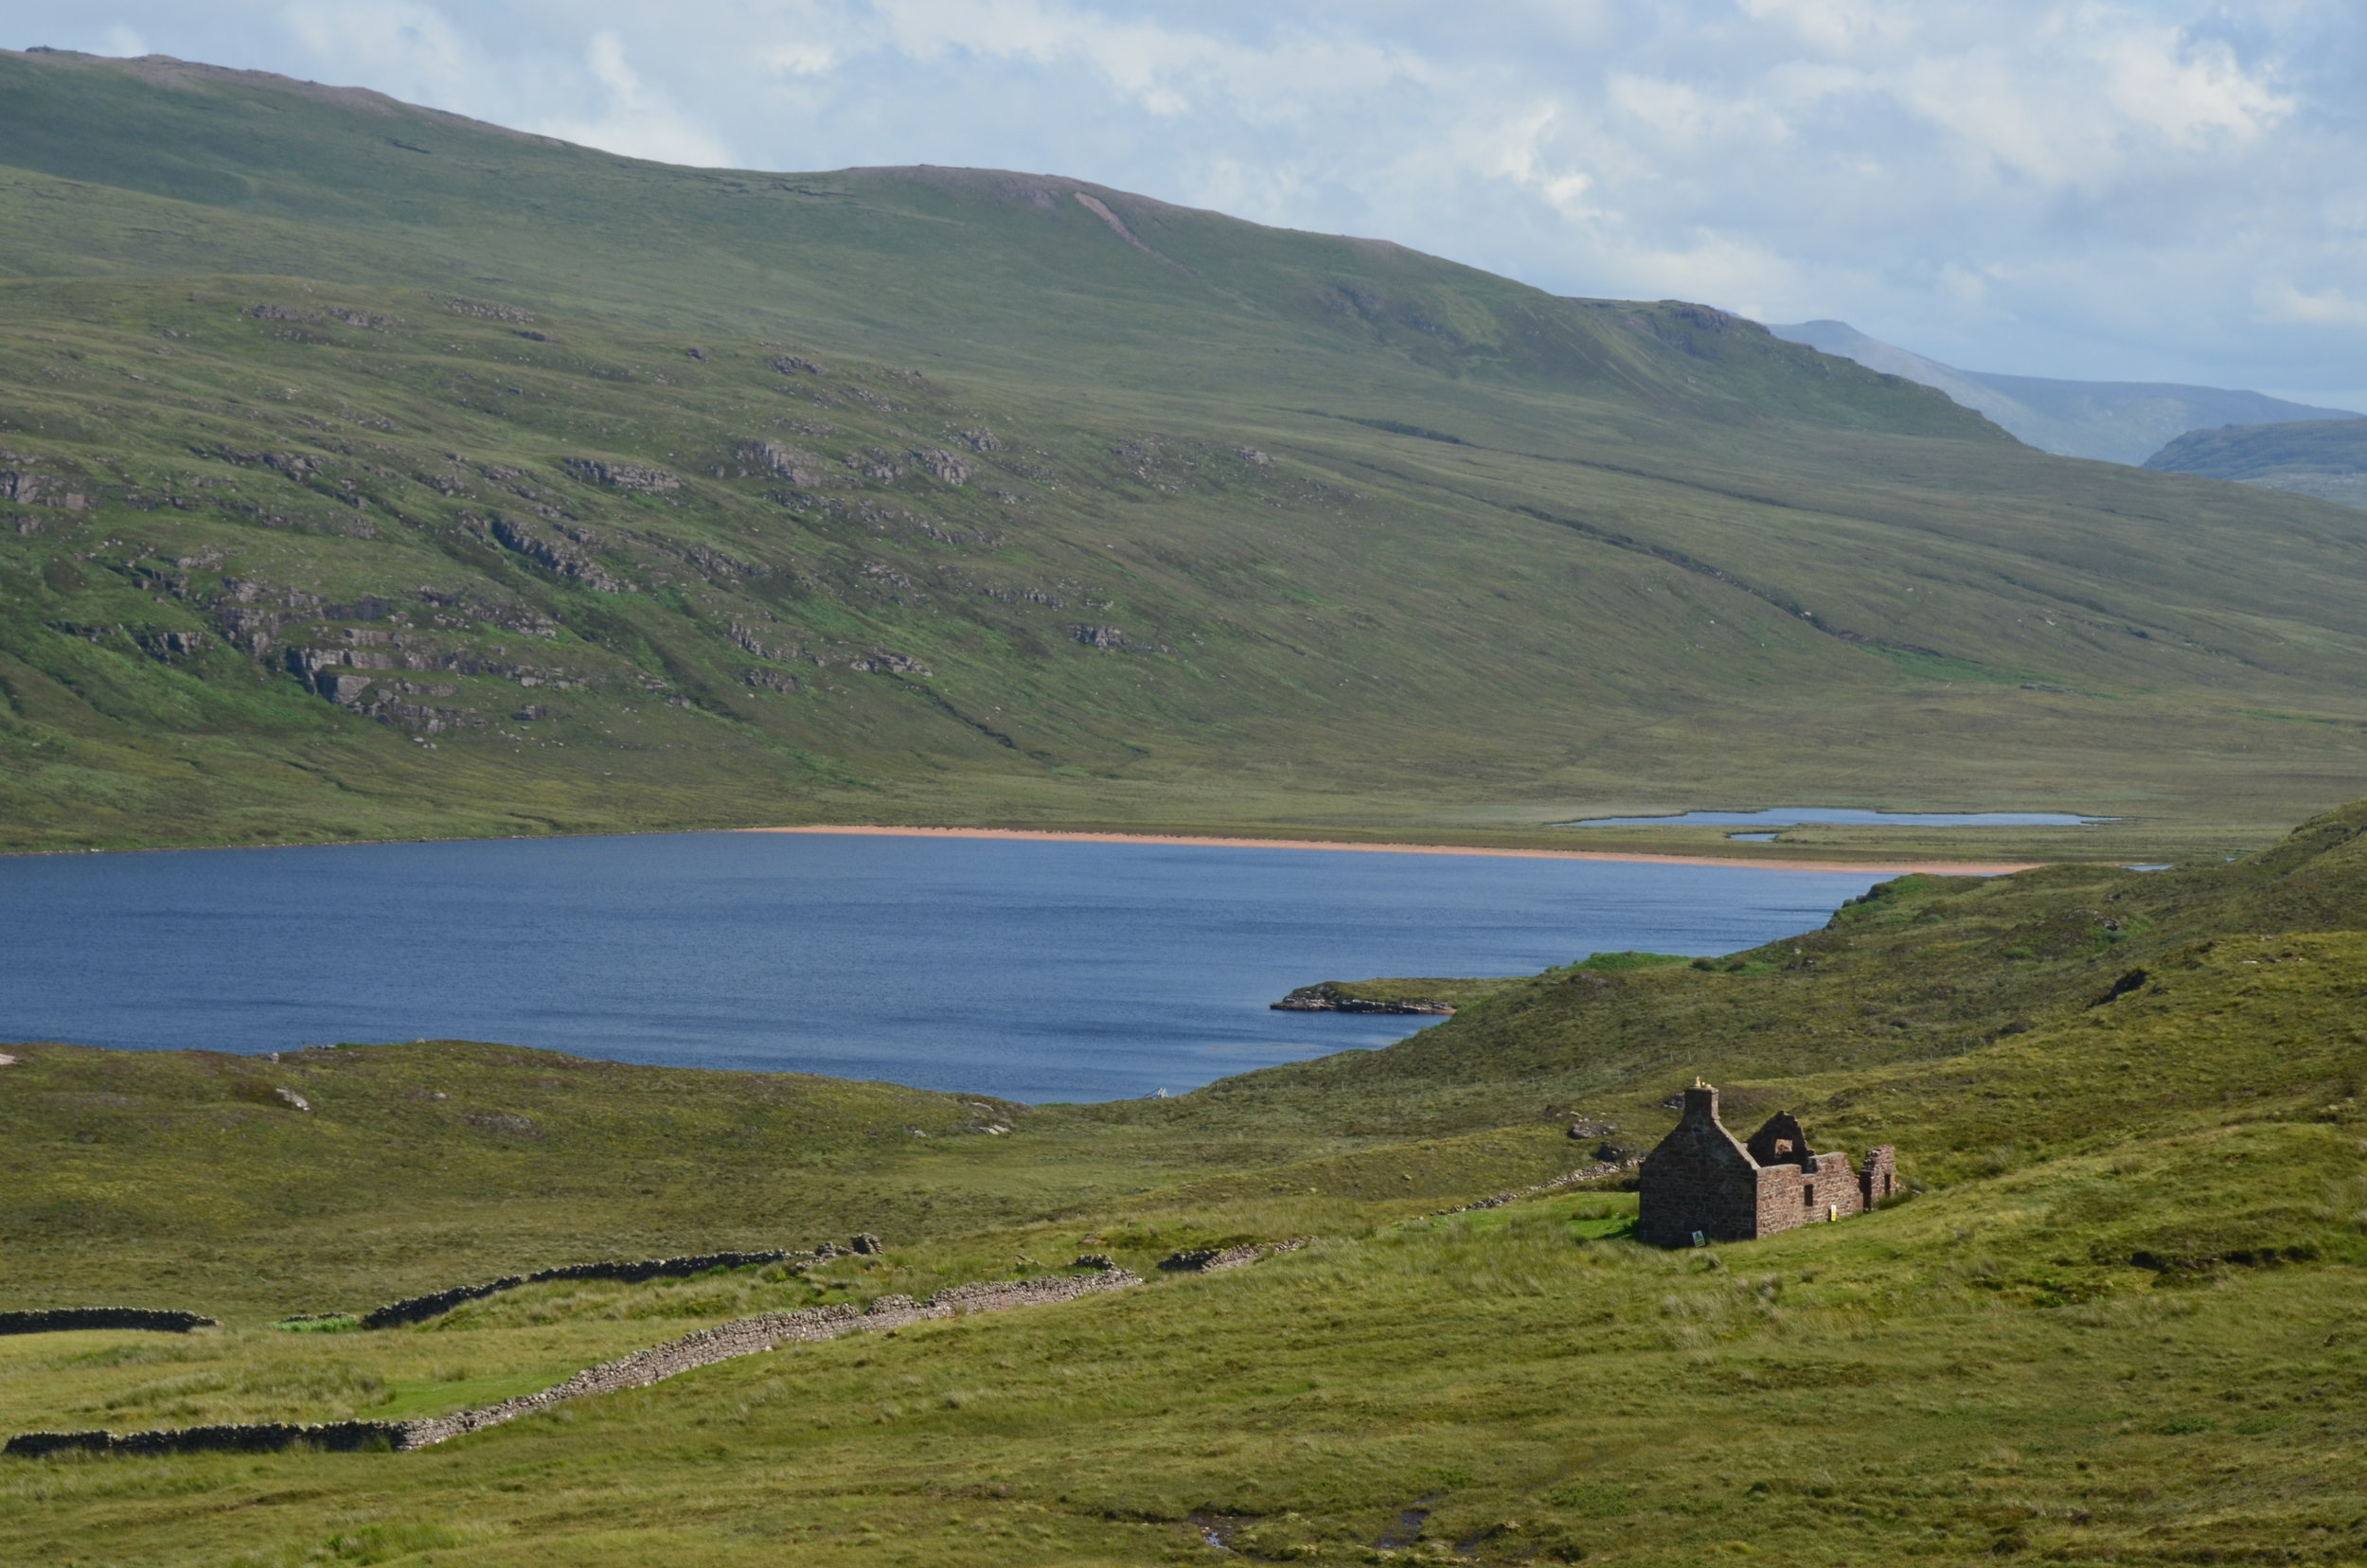 the abandoned house which hugs the shores of Sandwood Loch- a freshwater loch